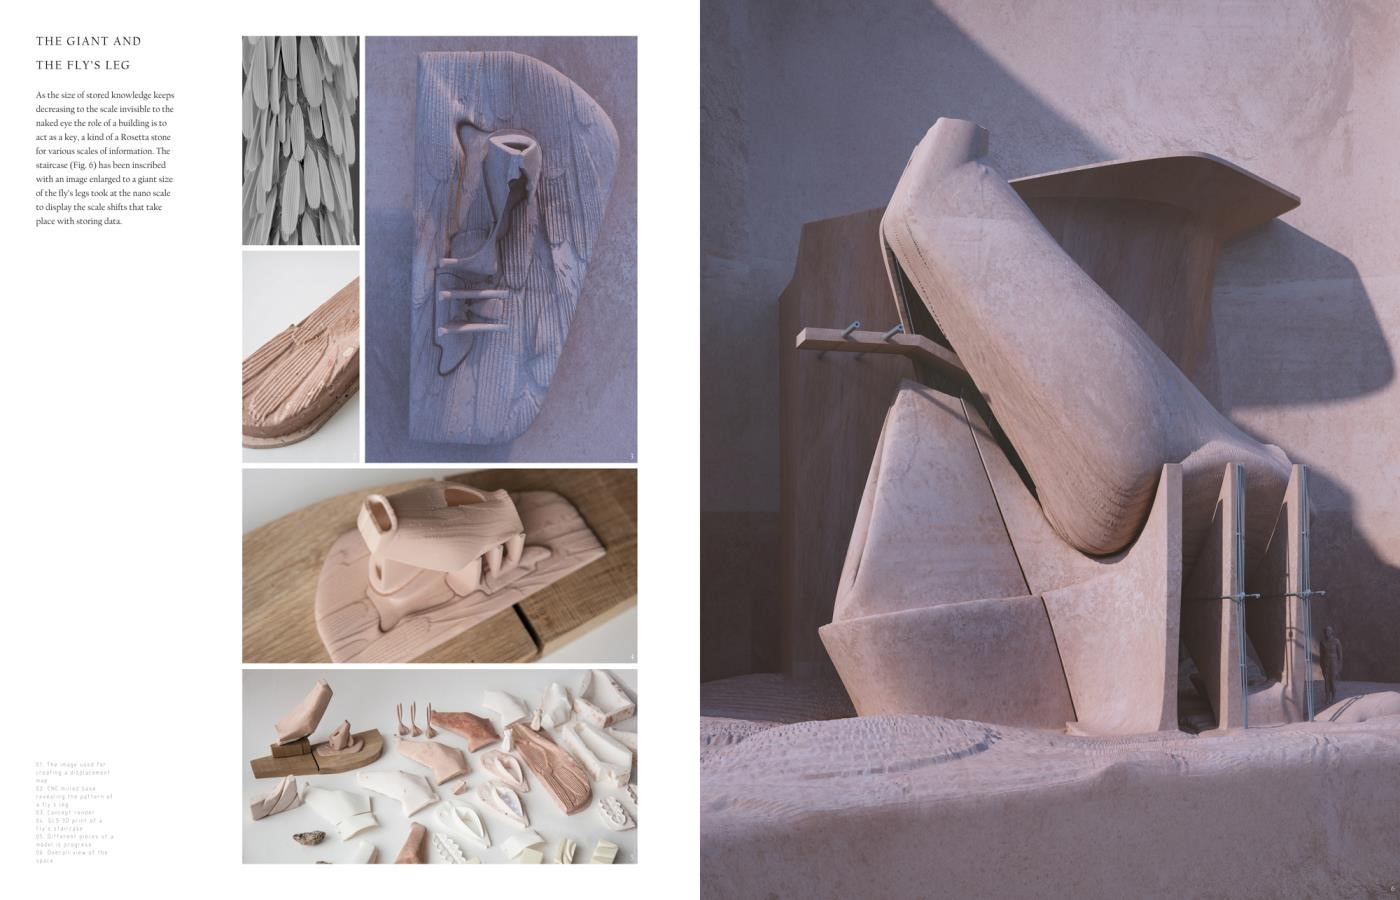 Sonia Magdziarz - How to Carve a Giant 2018, (Bartlett School of Architecture, UK) - Sheet3